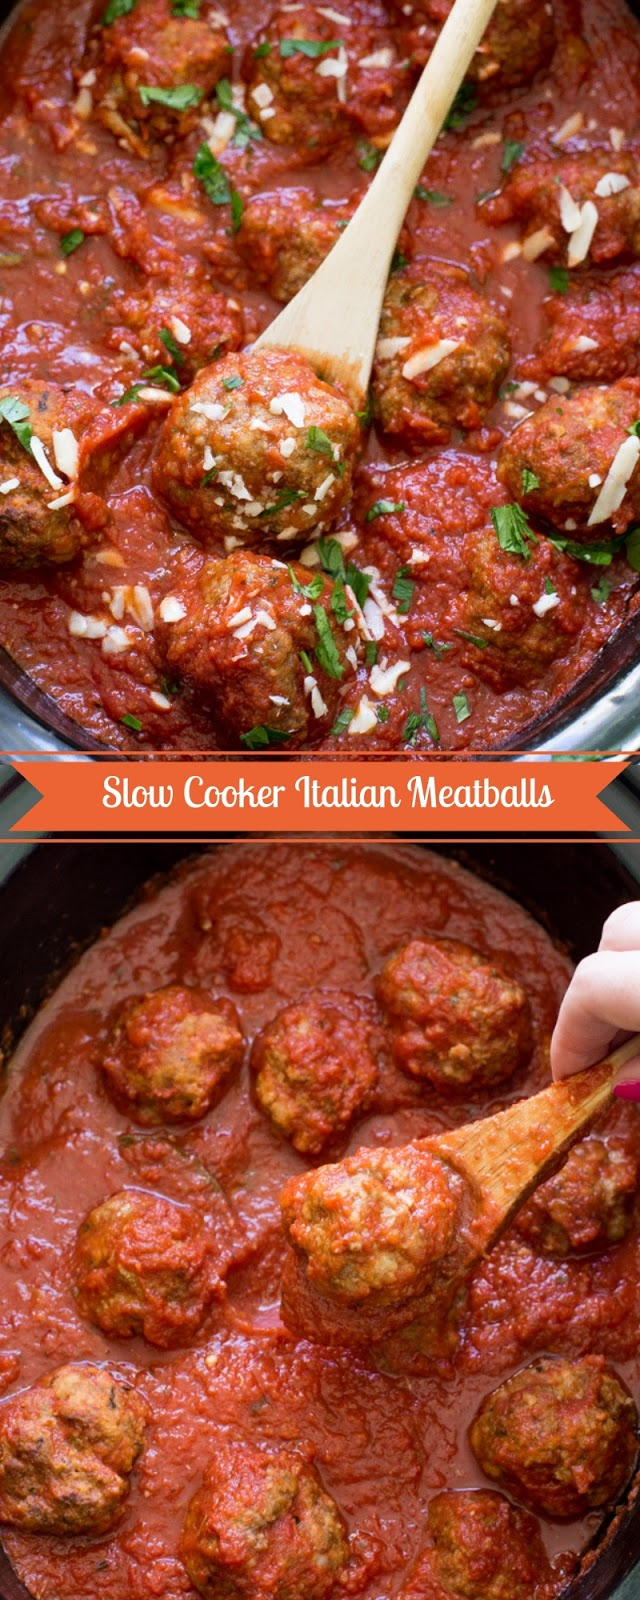 Slow Cooker Italian Meatballs